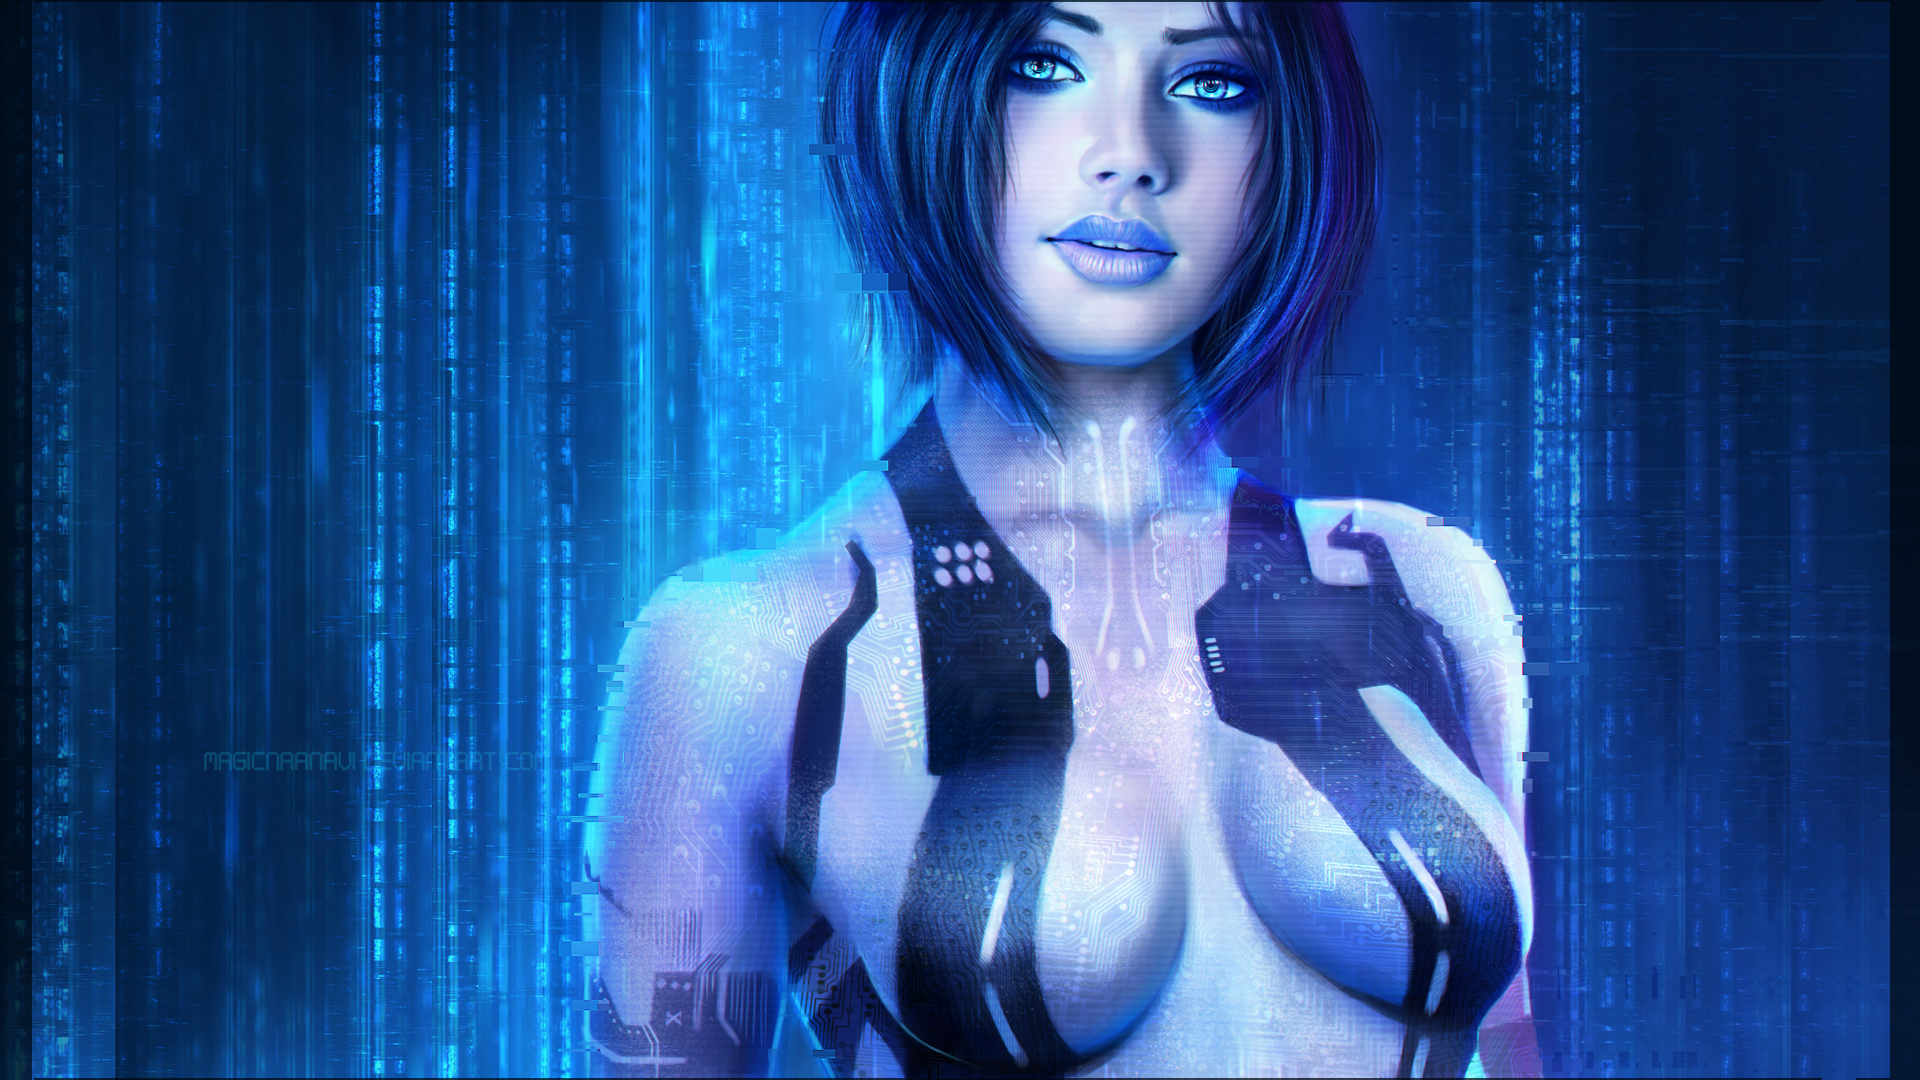 cortana wallpaper2 - photo #3